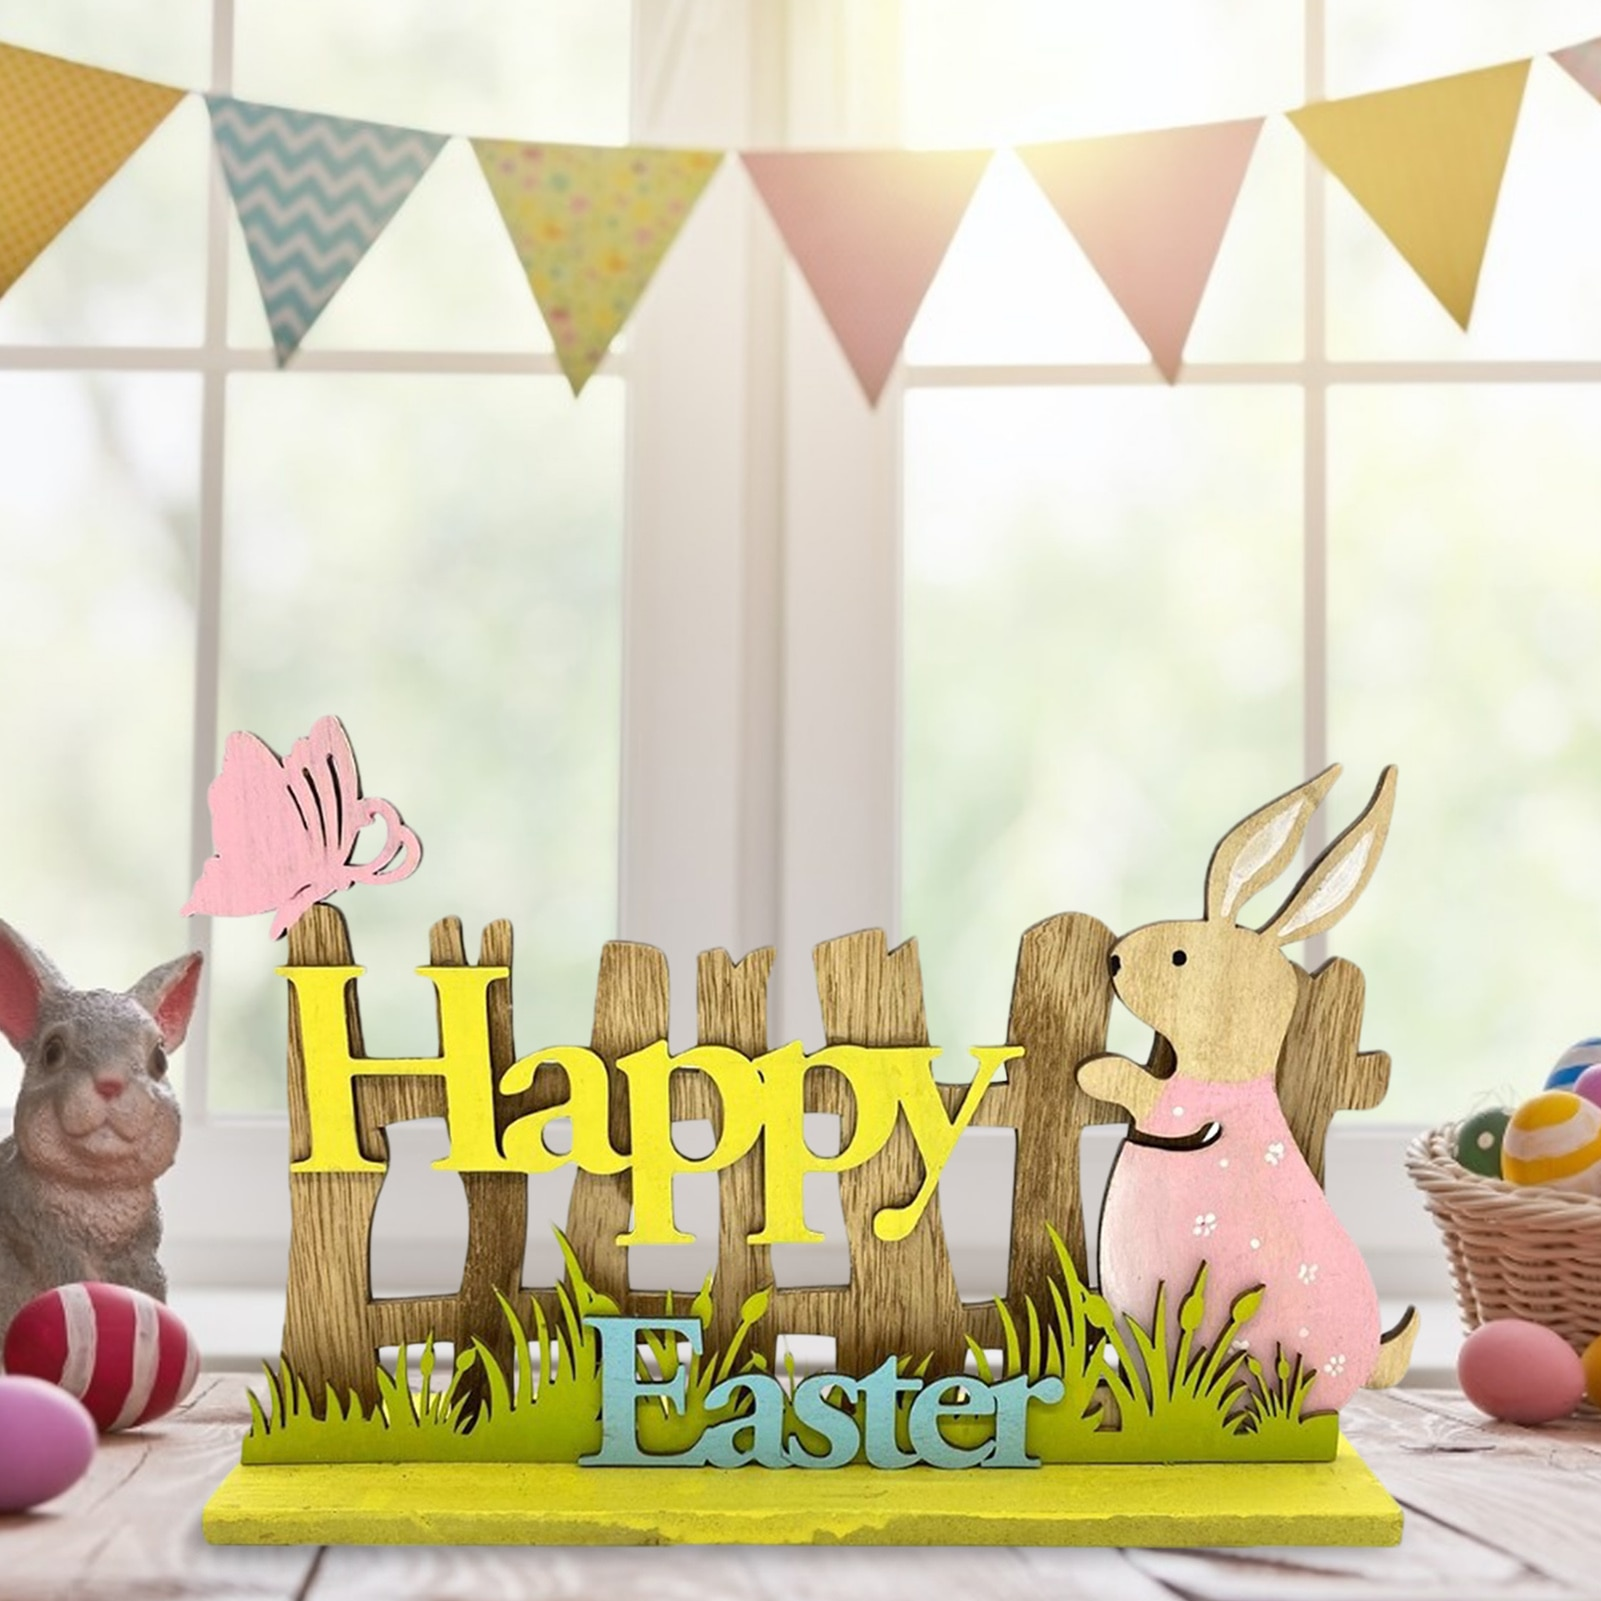 Easter Wooden Decoration Bunny Happy Easter Ornaments DIY Wood Rabbit Craft Gifts Easter Party Decor For Home 2019 sell like hot professional easter bunny mascot costumes rabbit and bugs bunny adult mascot for sale